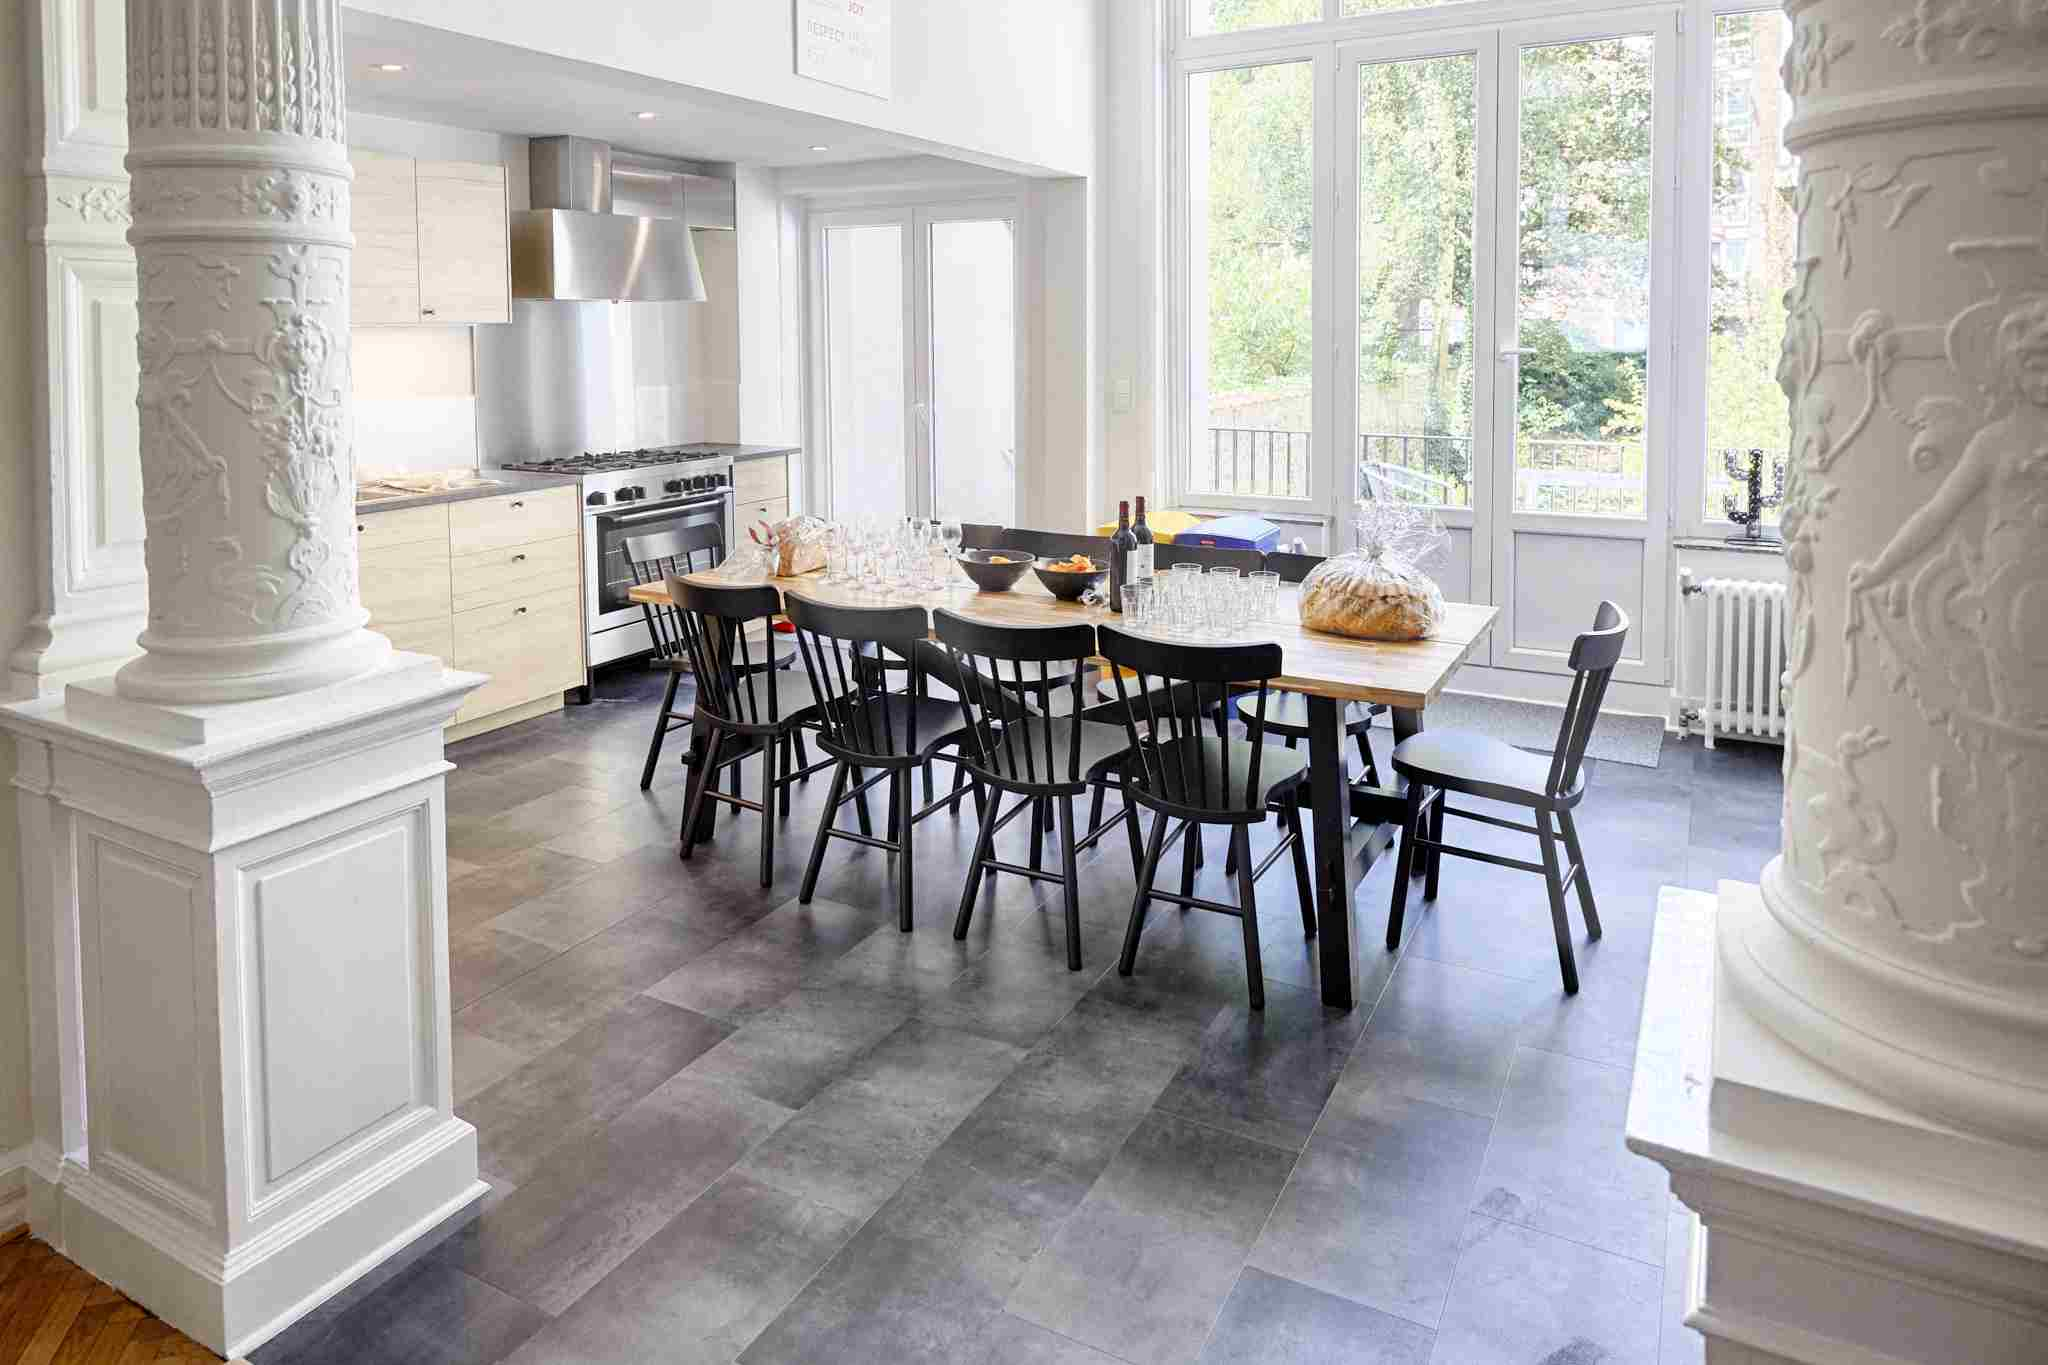 fully equipped kitchen with oven and microwave and stylish dining table in a cohousing space in Brussels